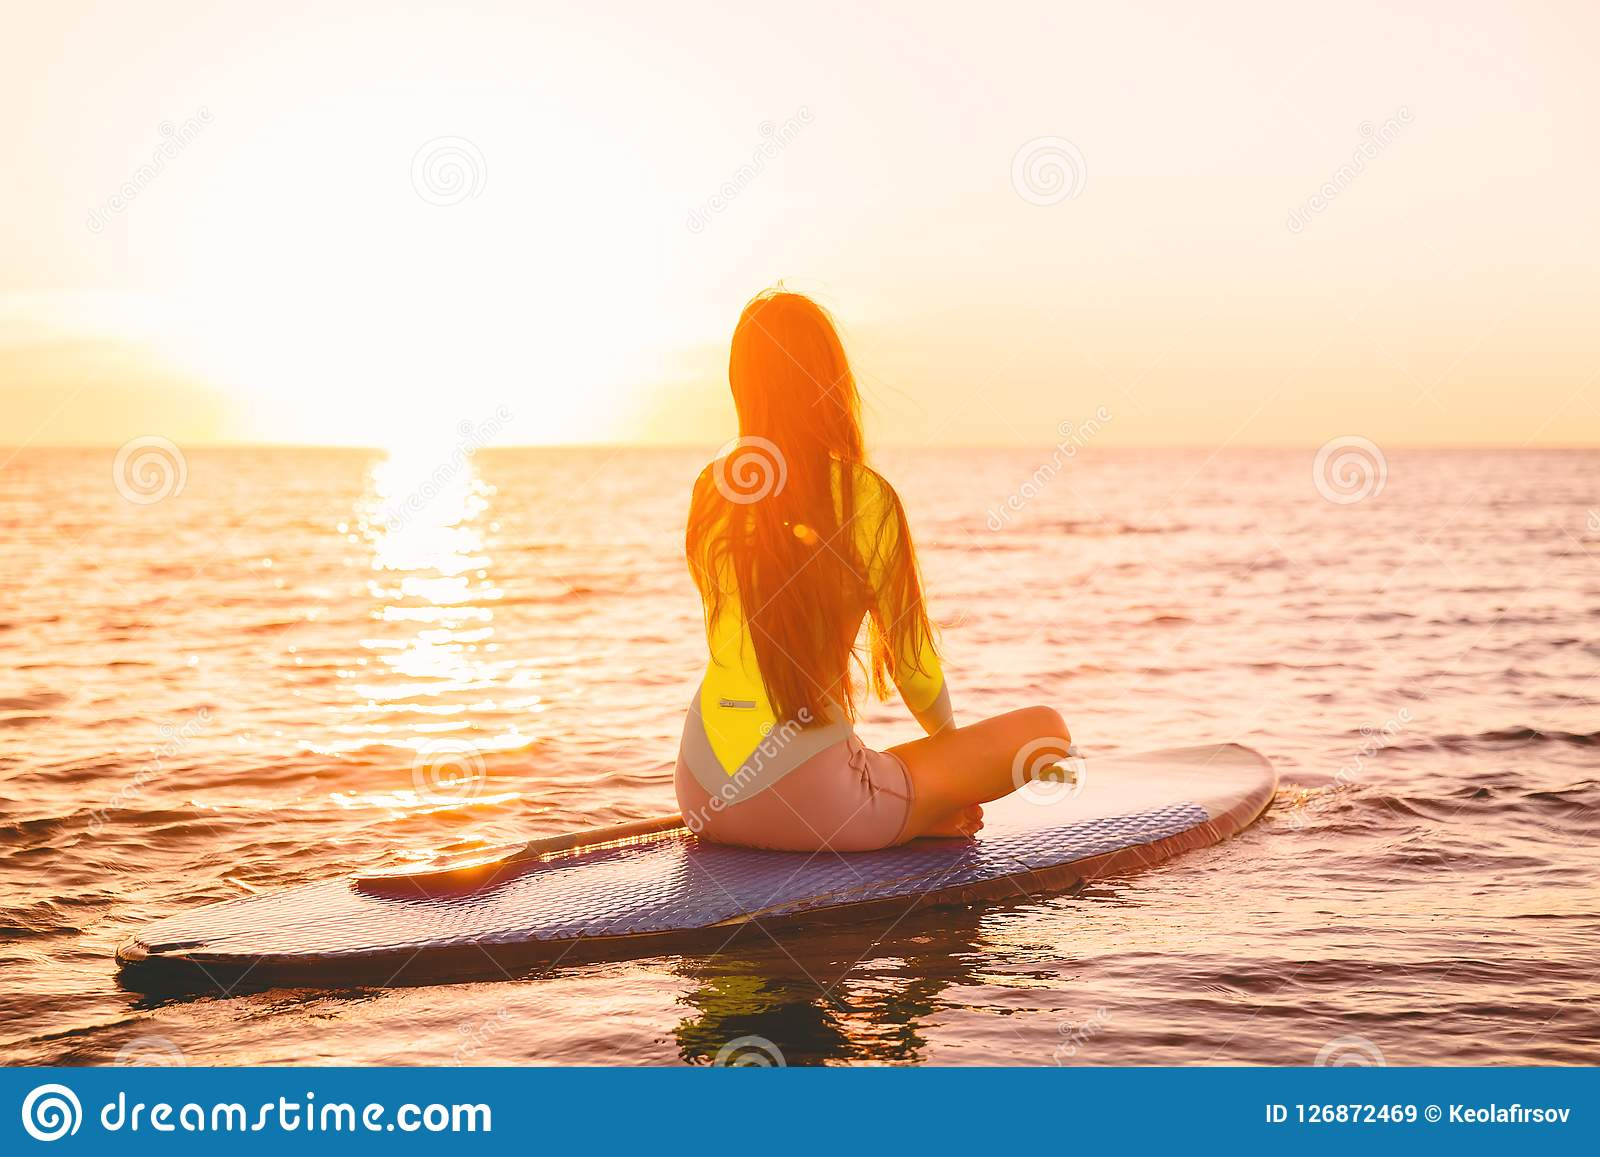 Stand up paddle boarding on a quiet sea with sunset colors. Woman meditation on sup board